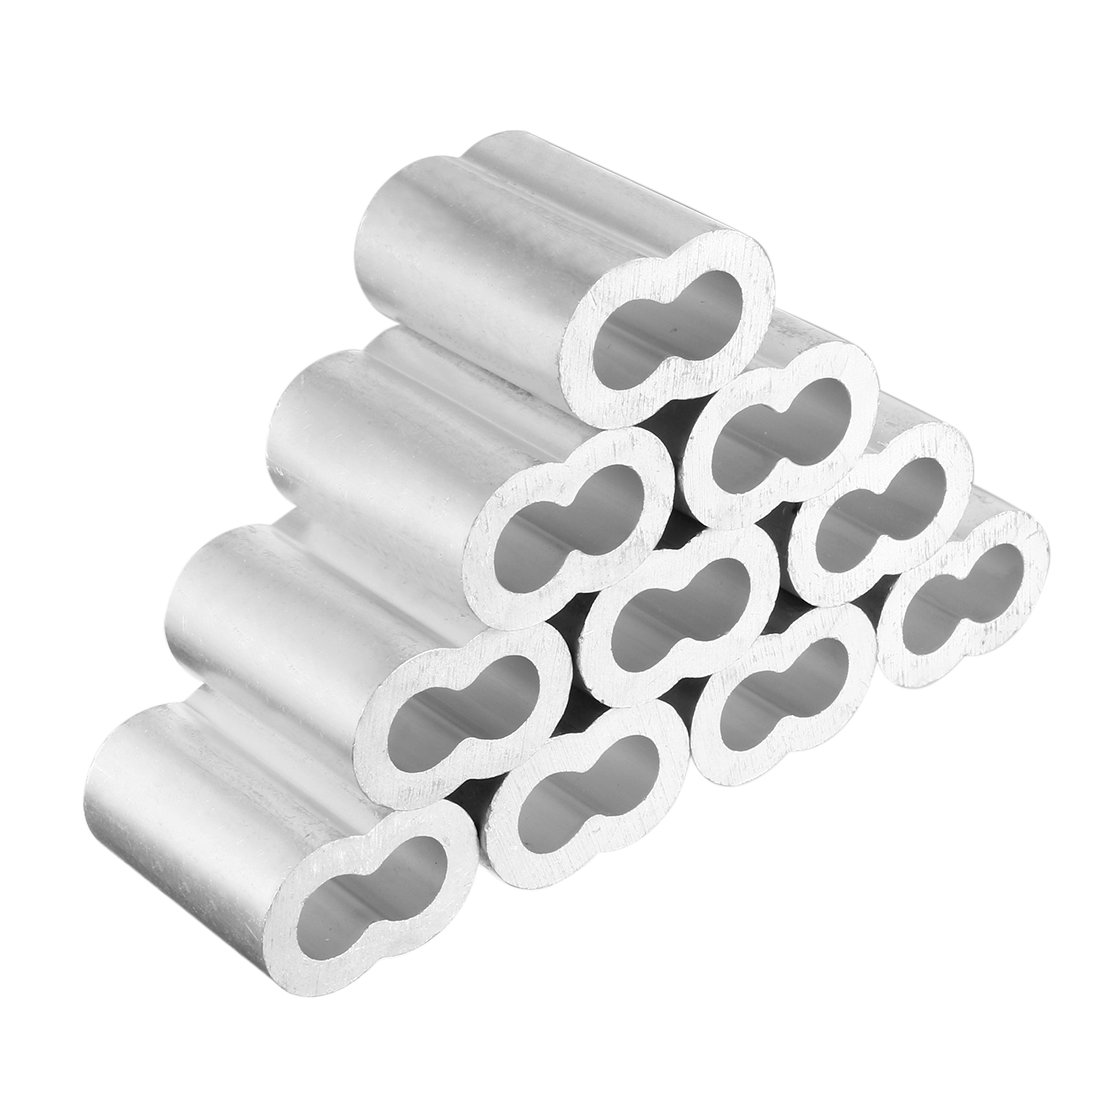 uxcell 0.55 inch (14mm) Diameter Wire Rope Aluminum Sleeves Clip Fittings Cable Crimps 10pcs